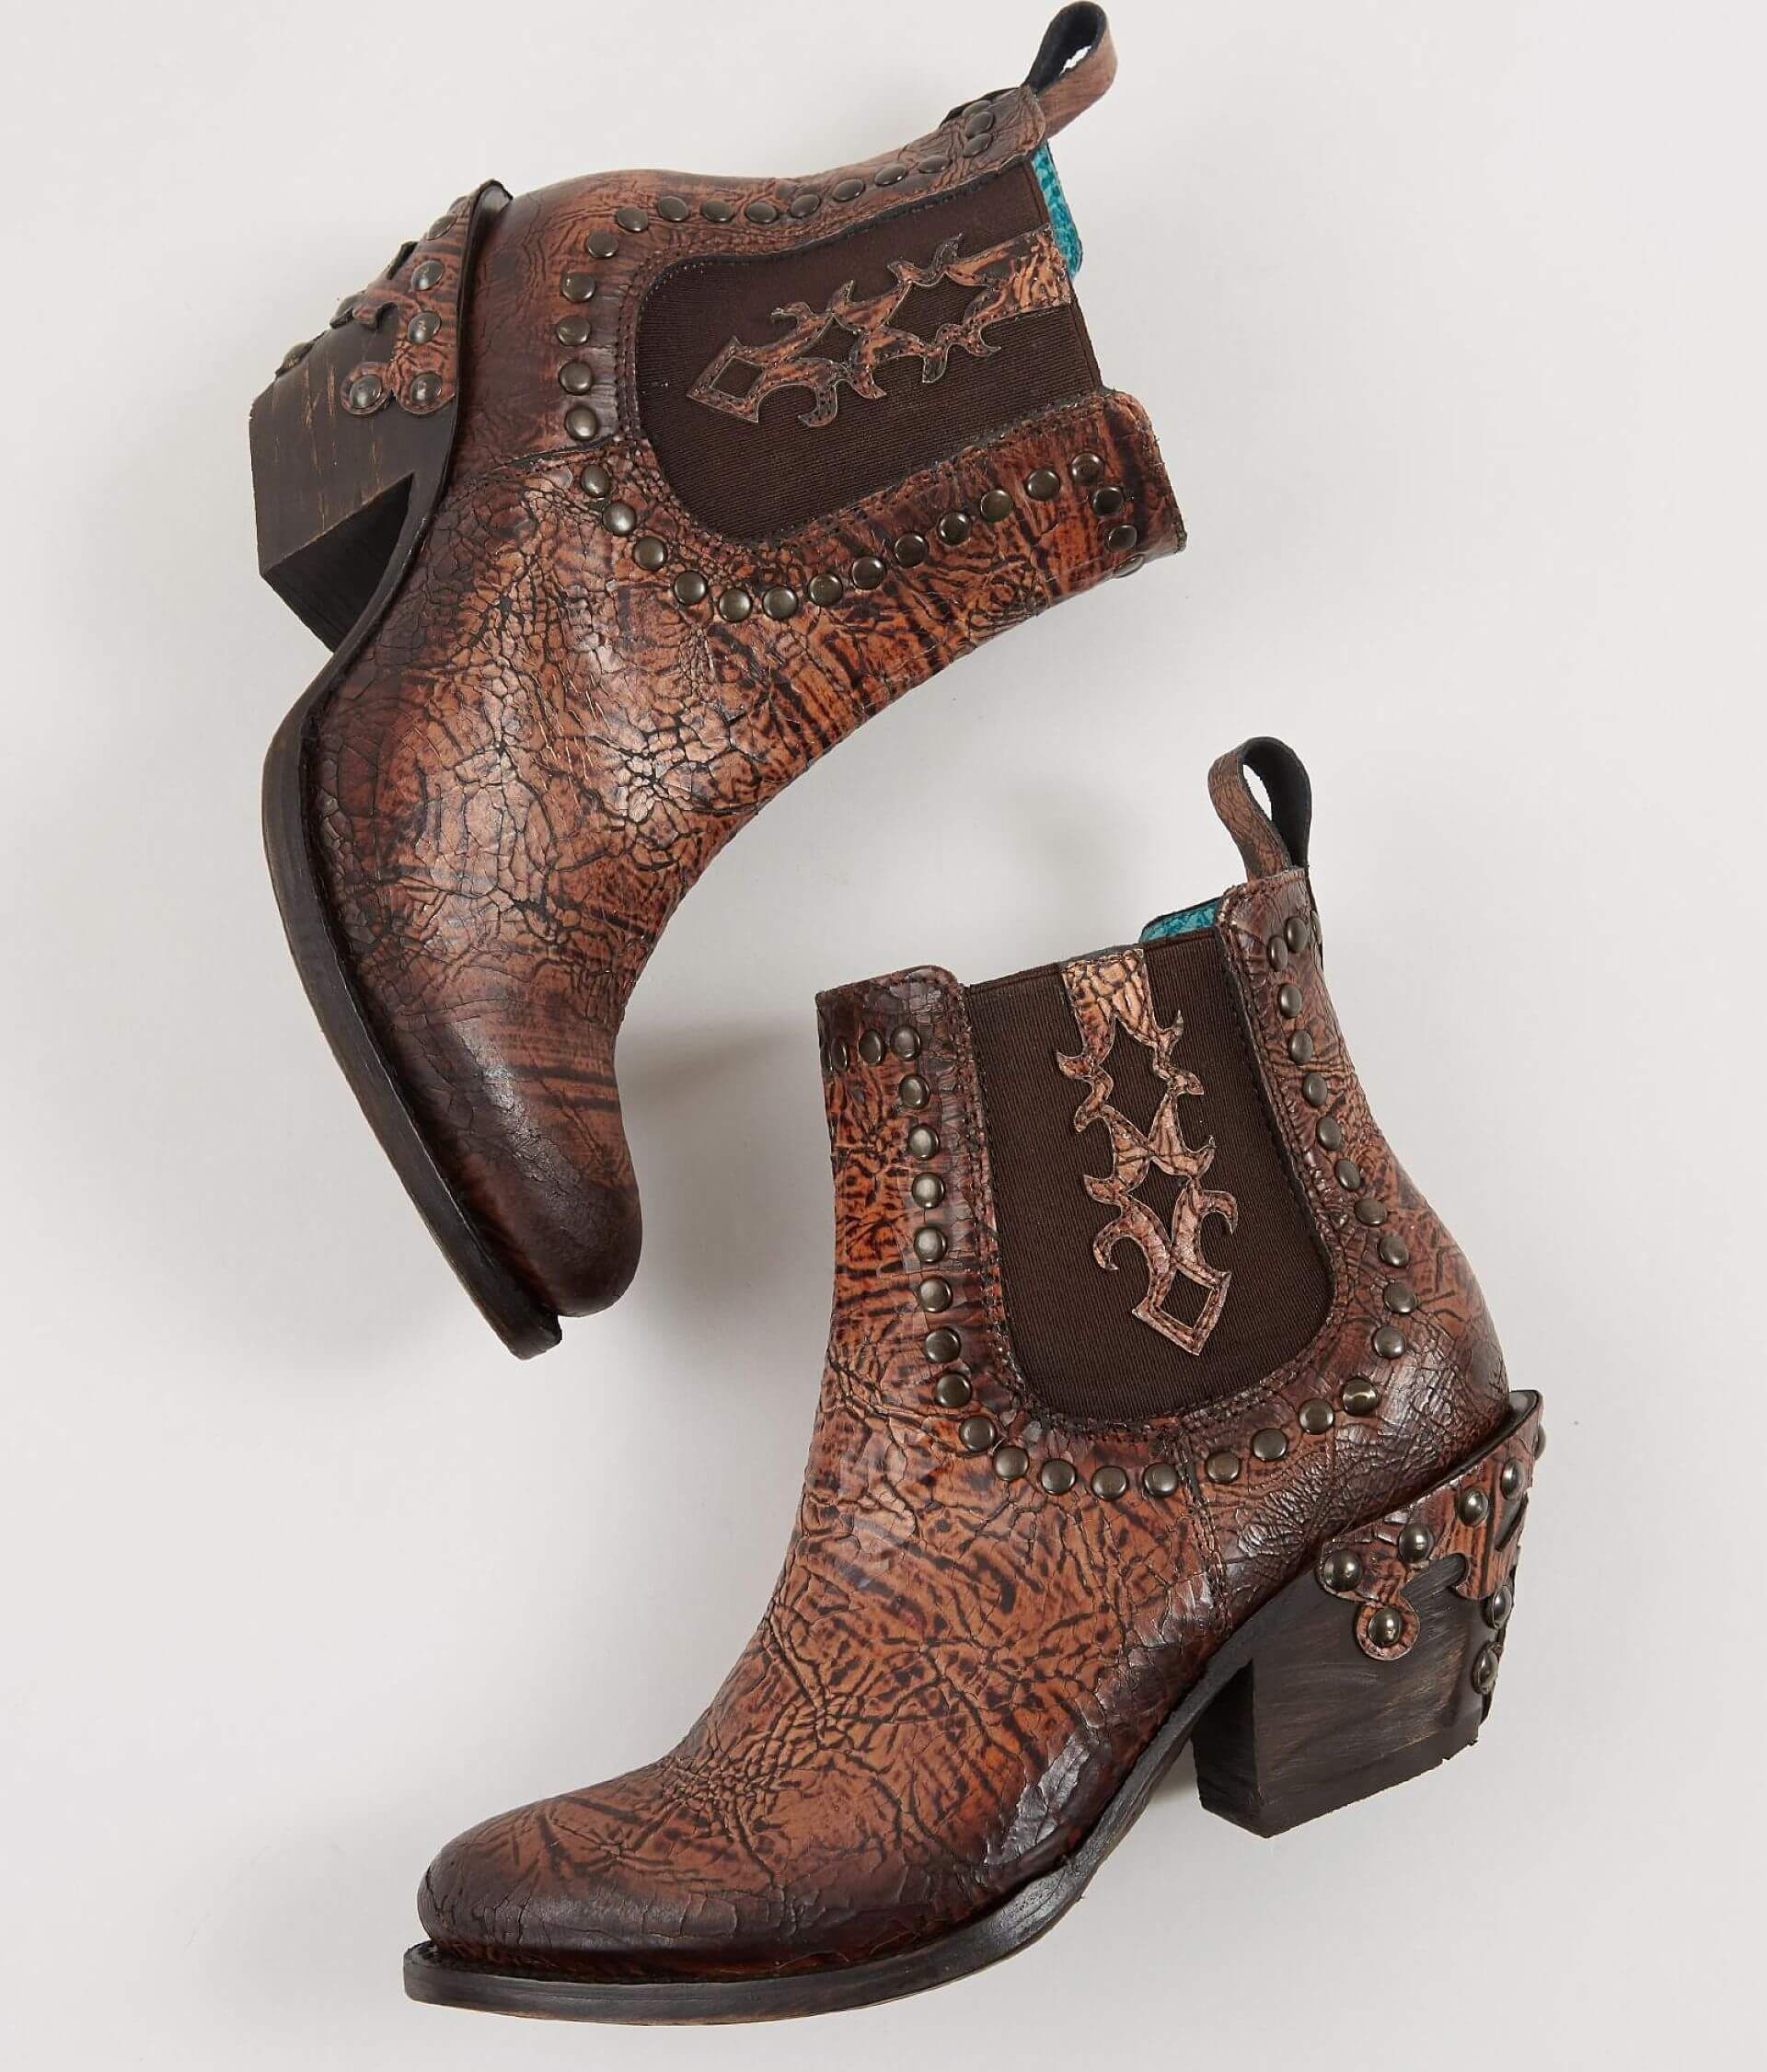 Corral Studded Mule Leather Ankle Boot